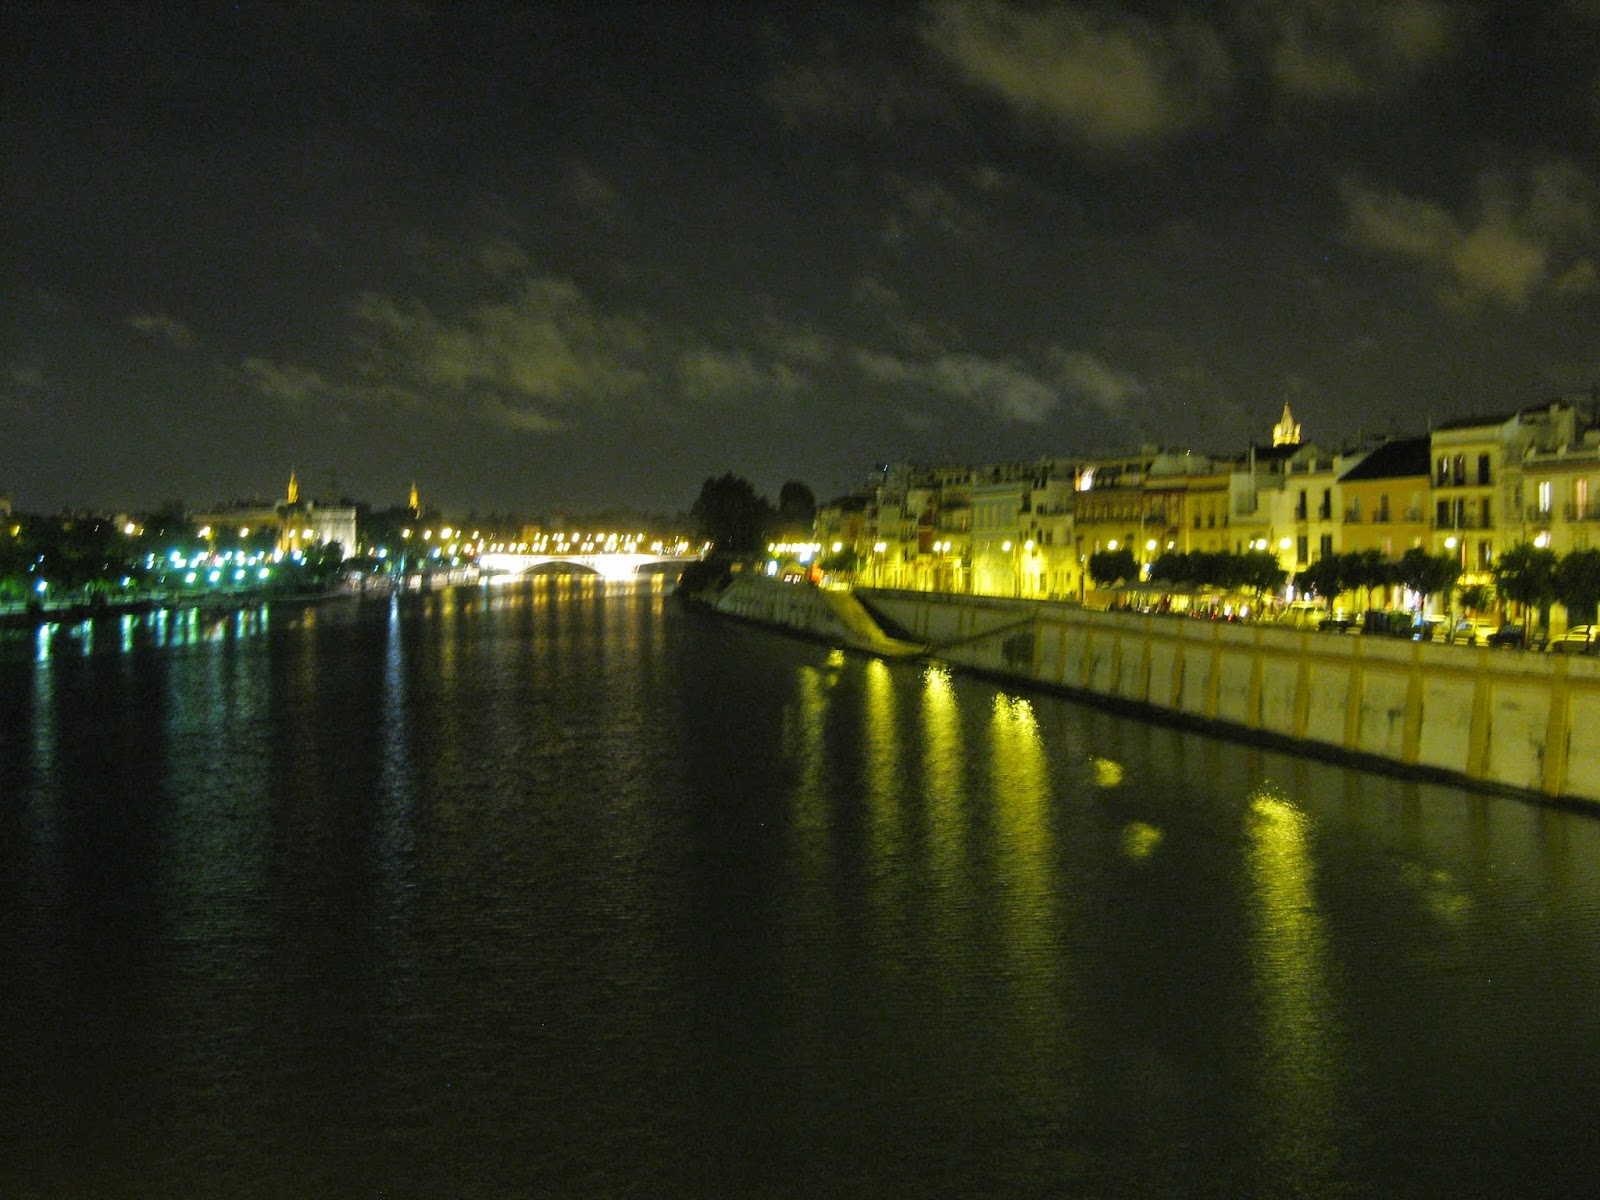 Seville - Night time view of the Triana neighborhood